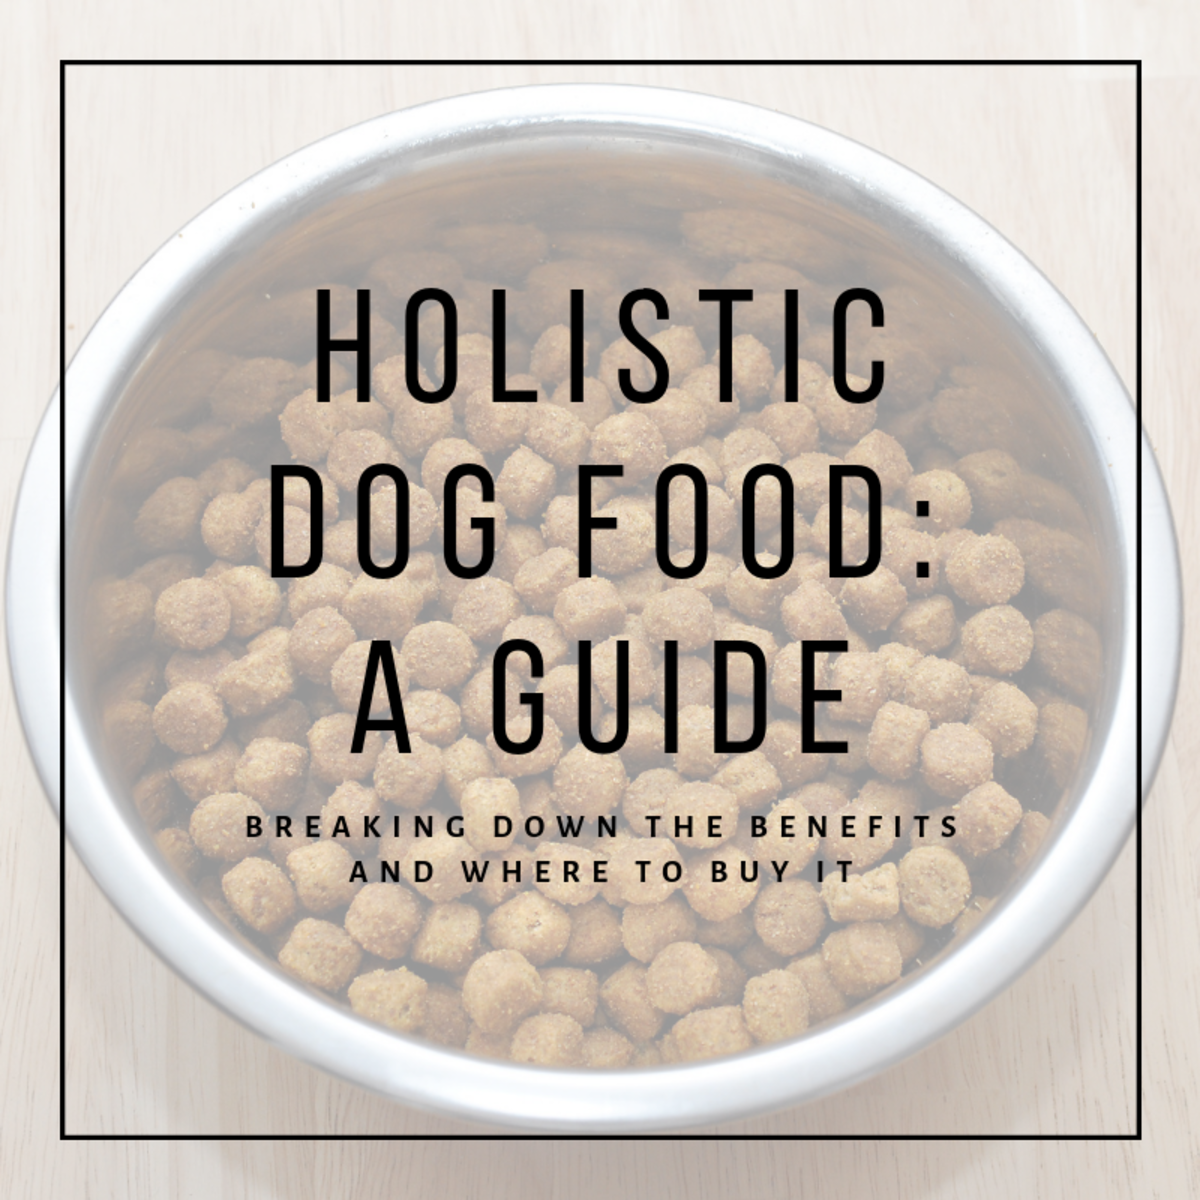 The Benefits of Holistic Dog Food